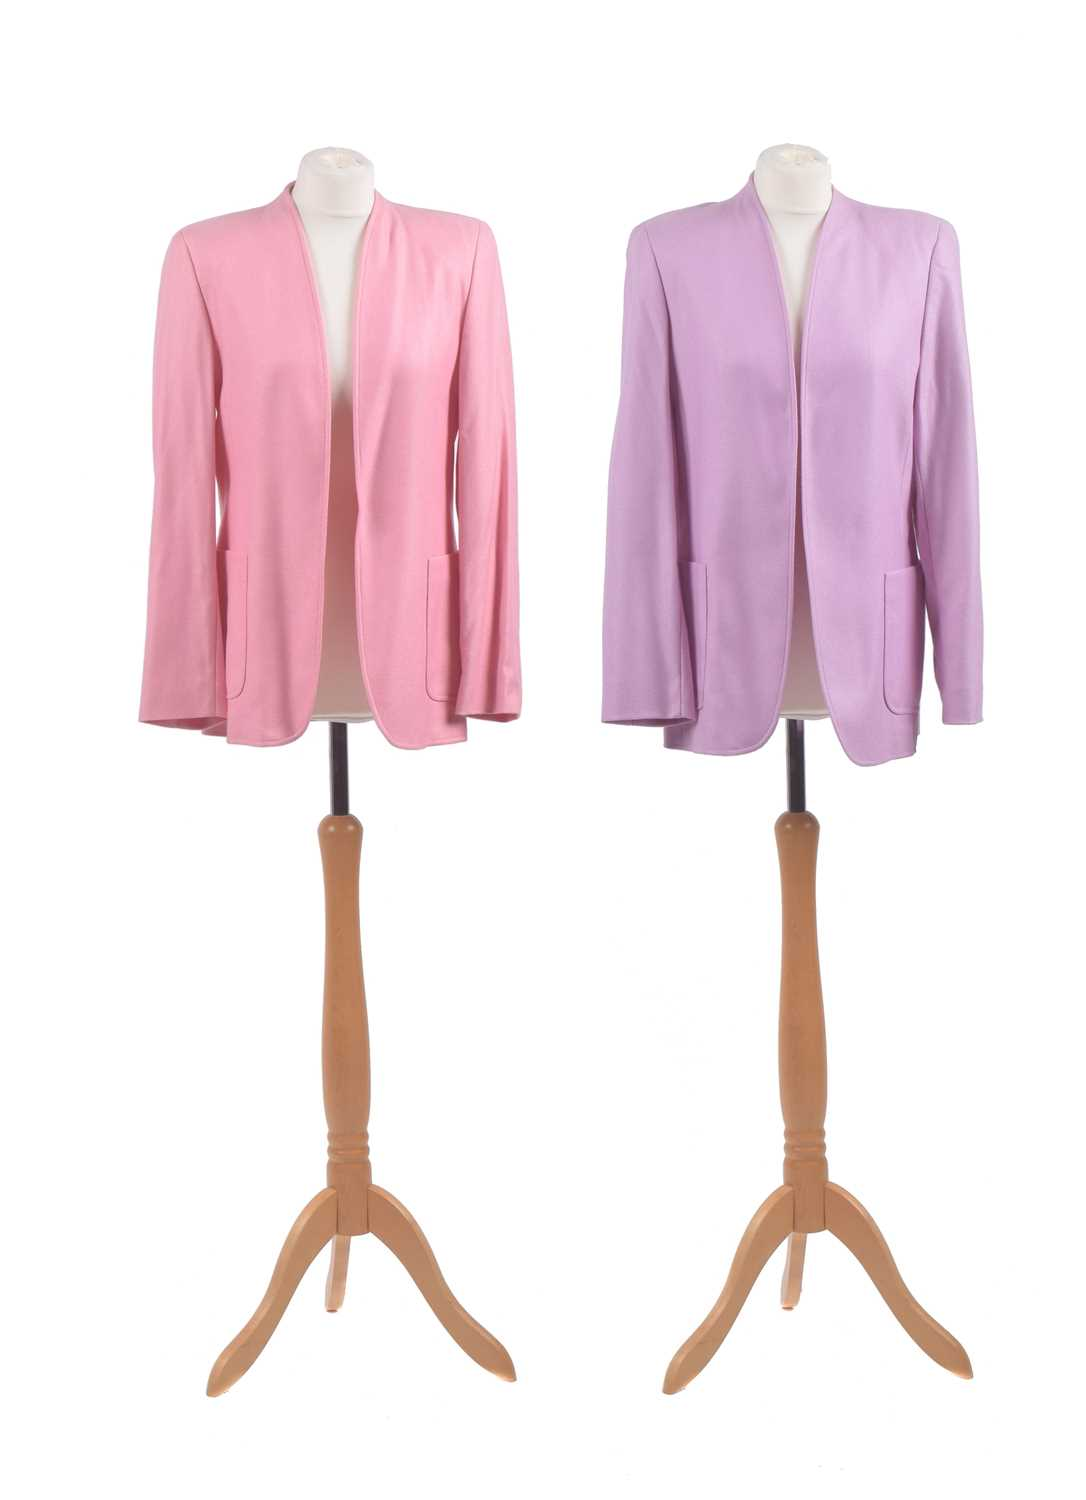 Lot 22 - Two cashmere jackets by Escada